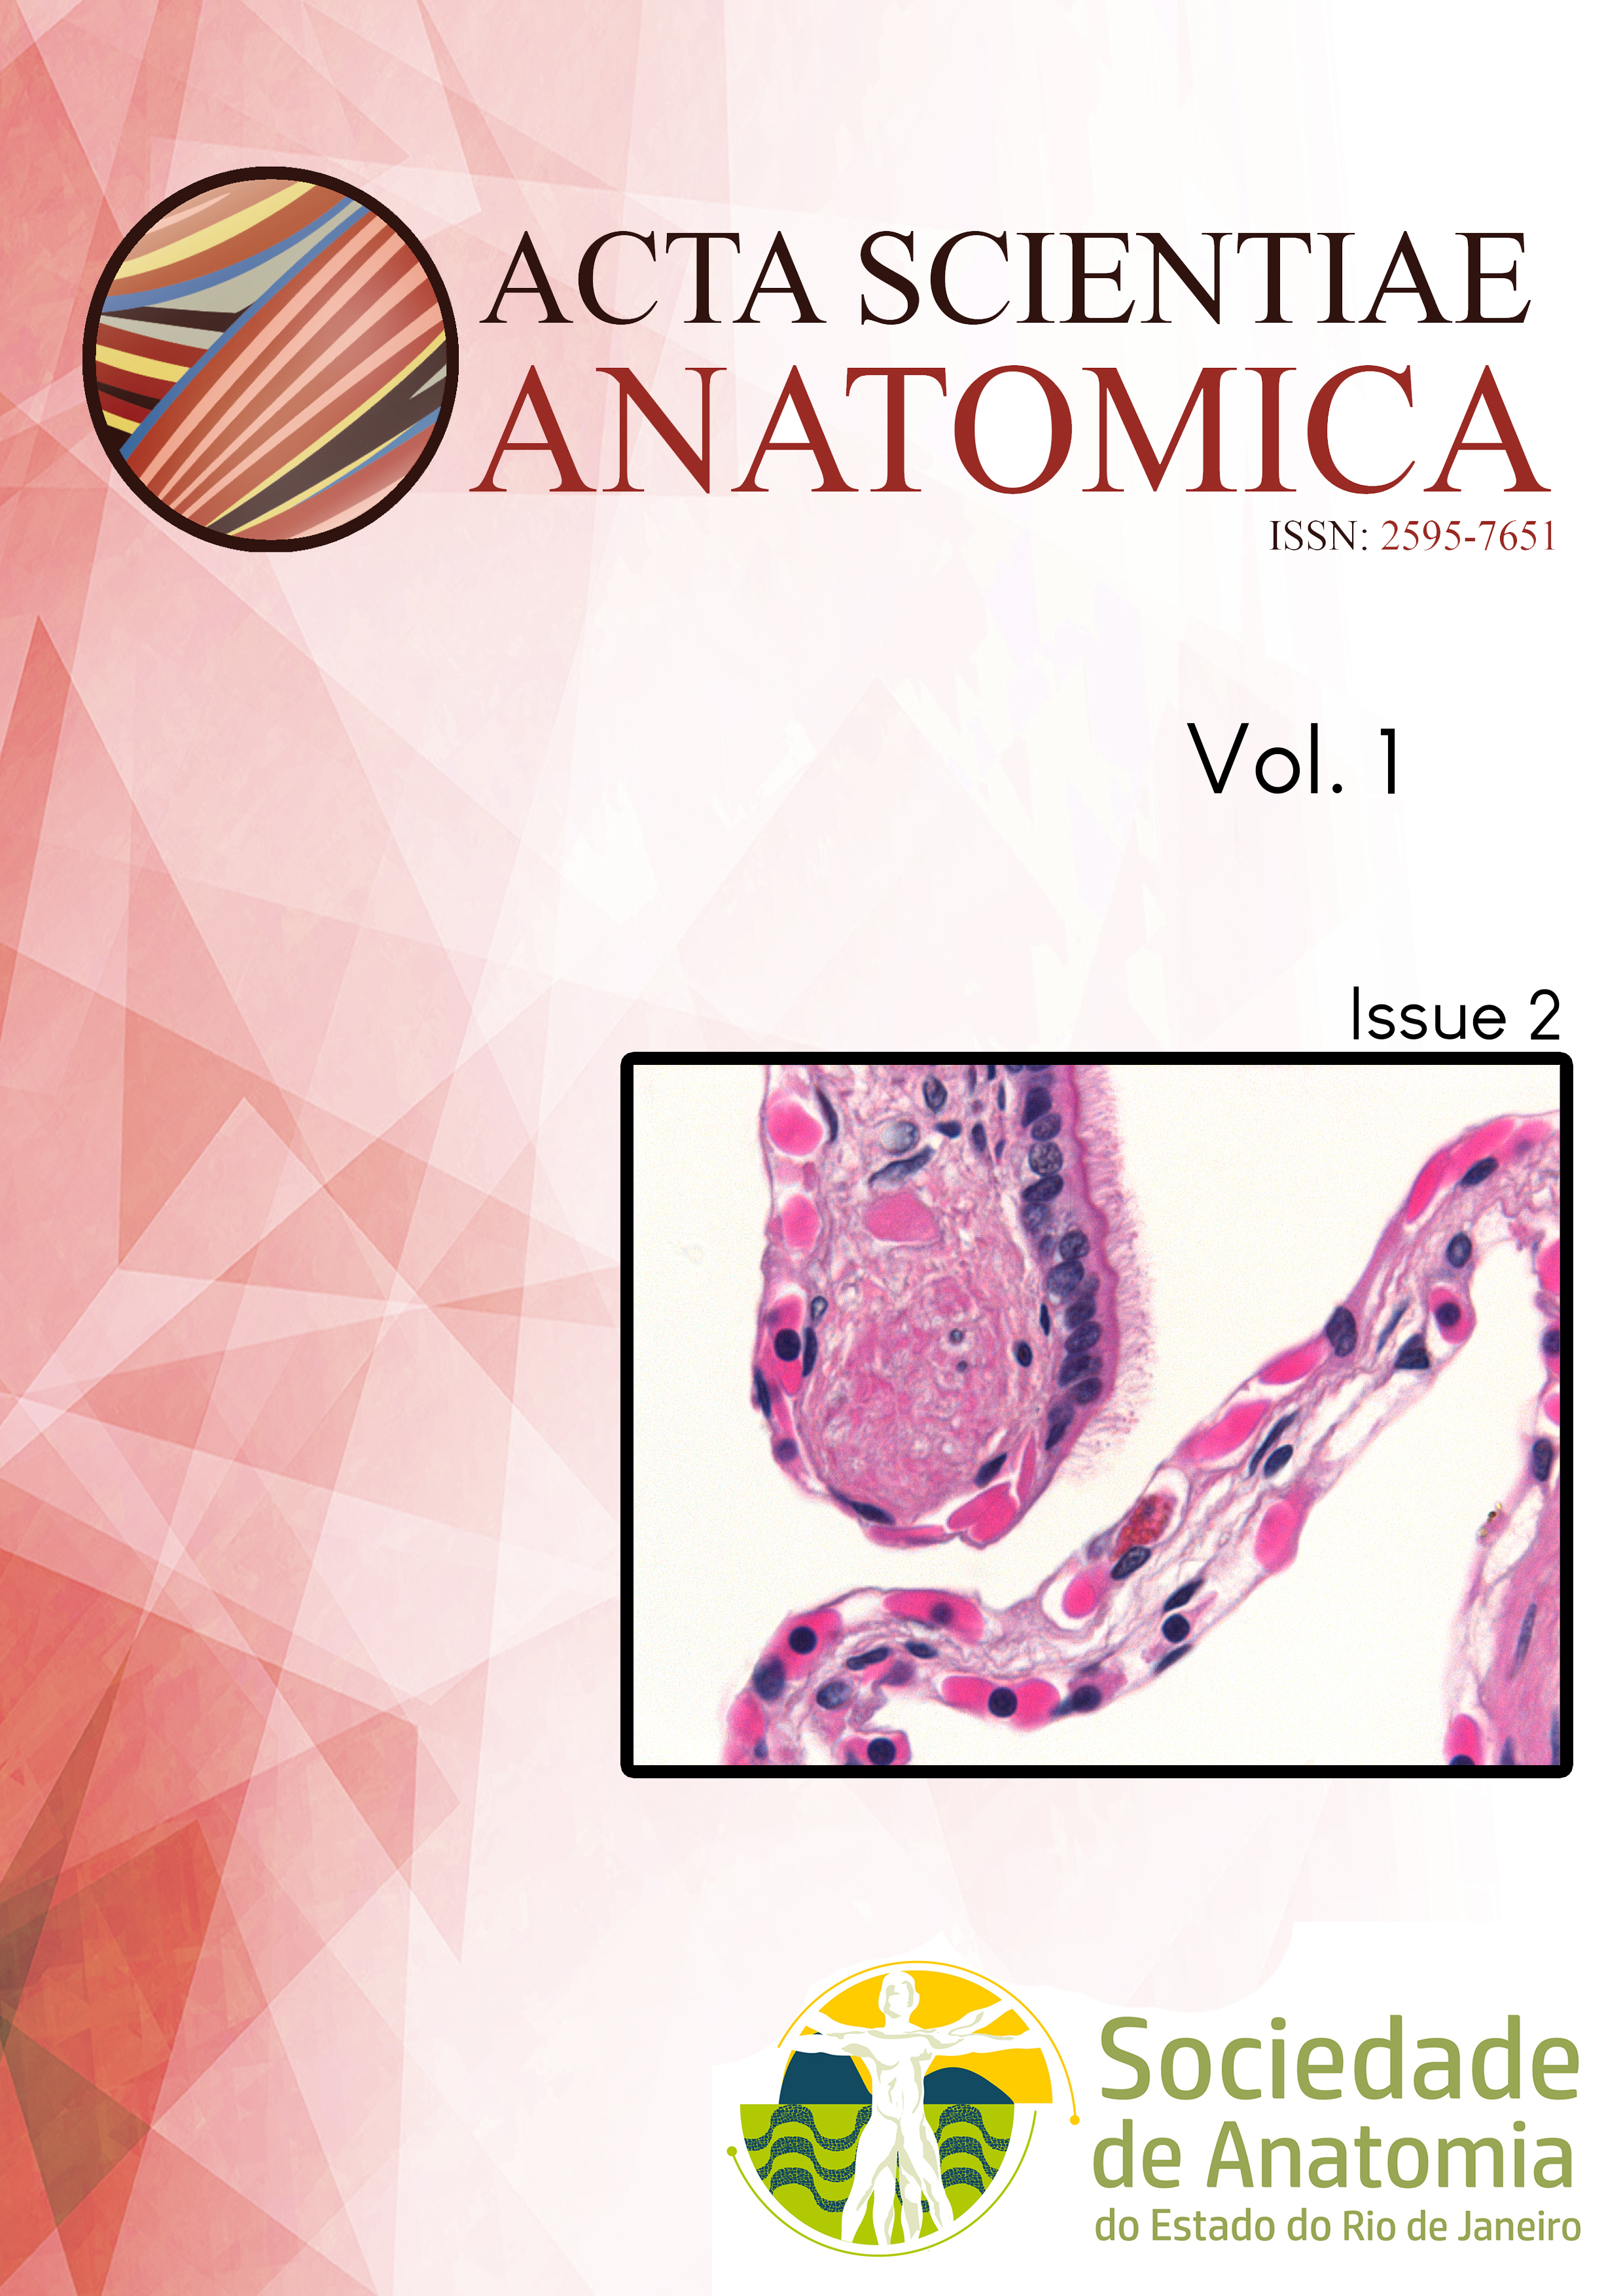 Cover for the Second Issue of Acta Scientiae Anatomica